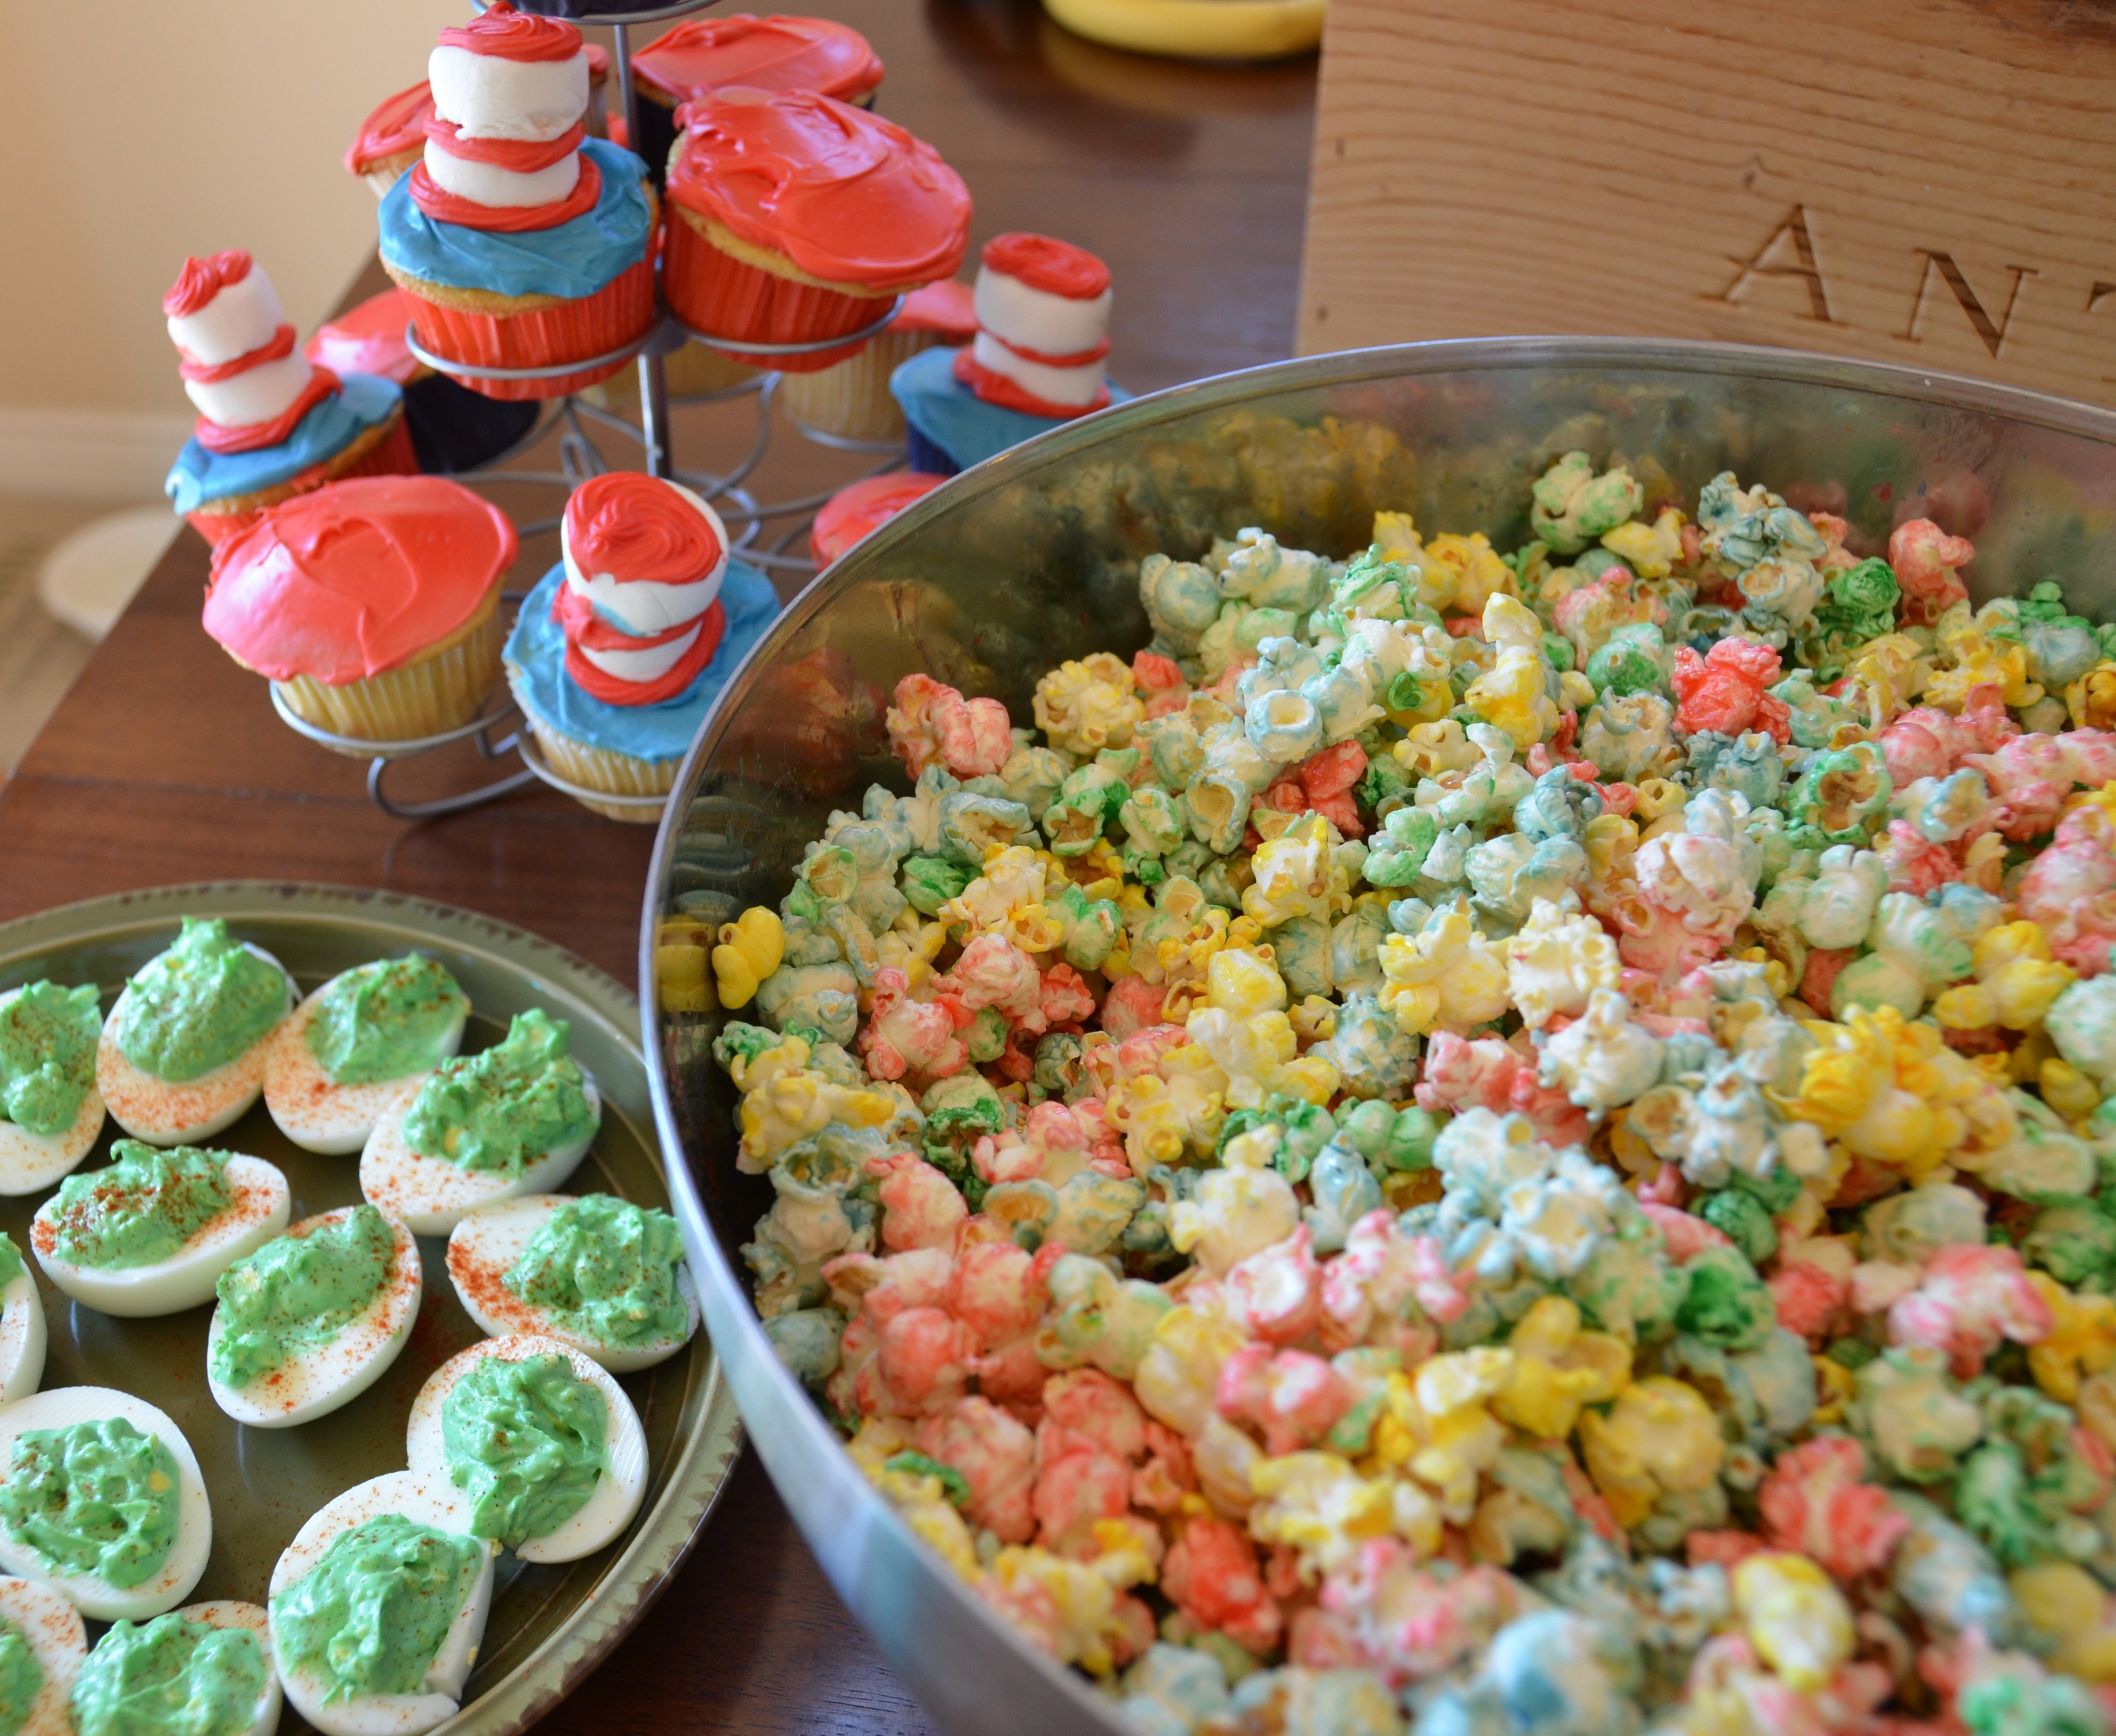 10 Nice Food Ideas For Baby Showers baby shower foods on a budget wedding 5 2020